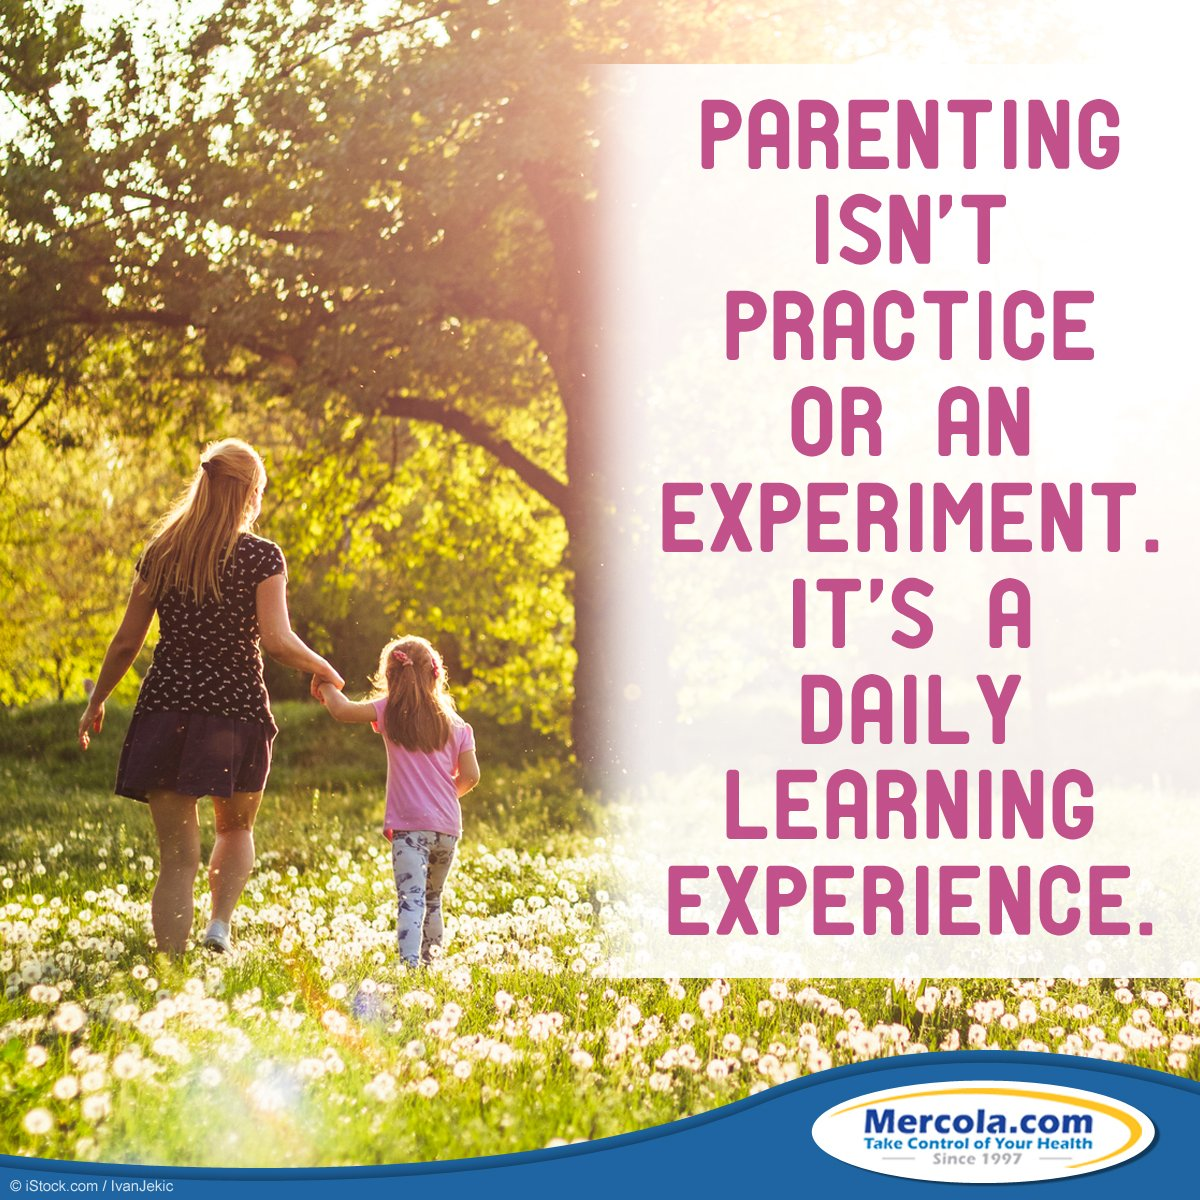 #Parenting isn't practice or an experiment. It's a daily learning experience. https://t.co/vAYLnOPIeY